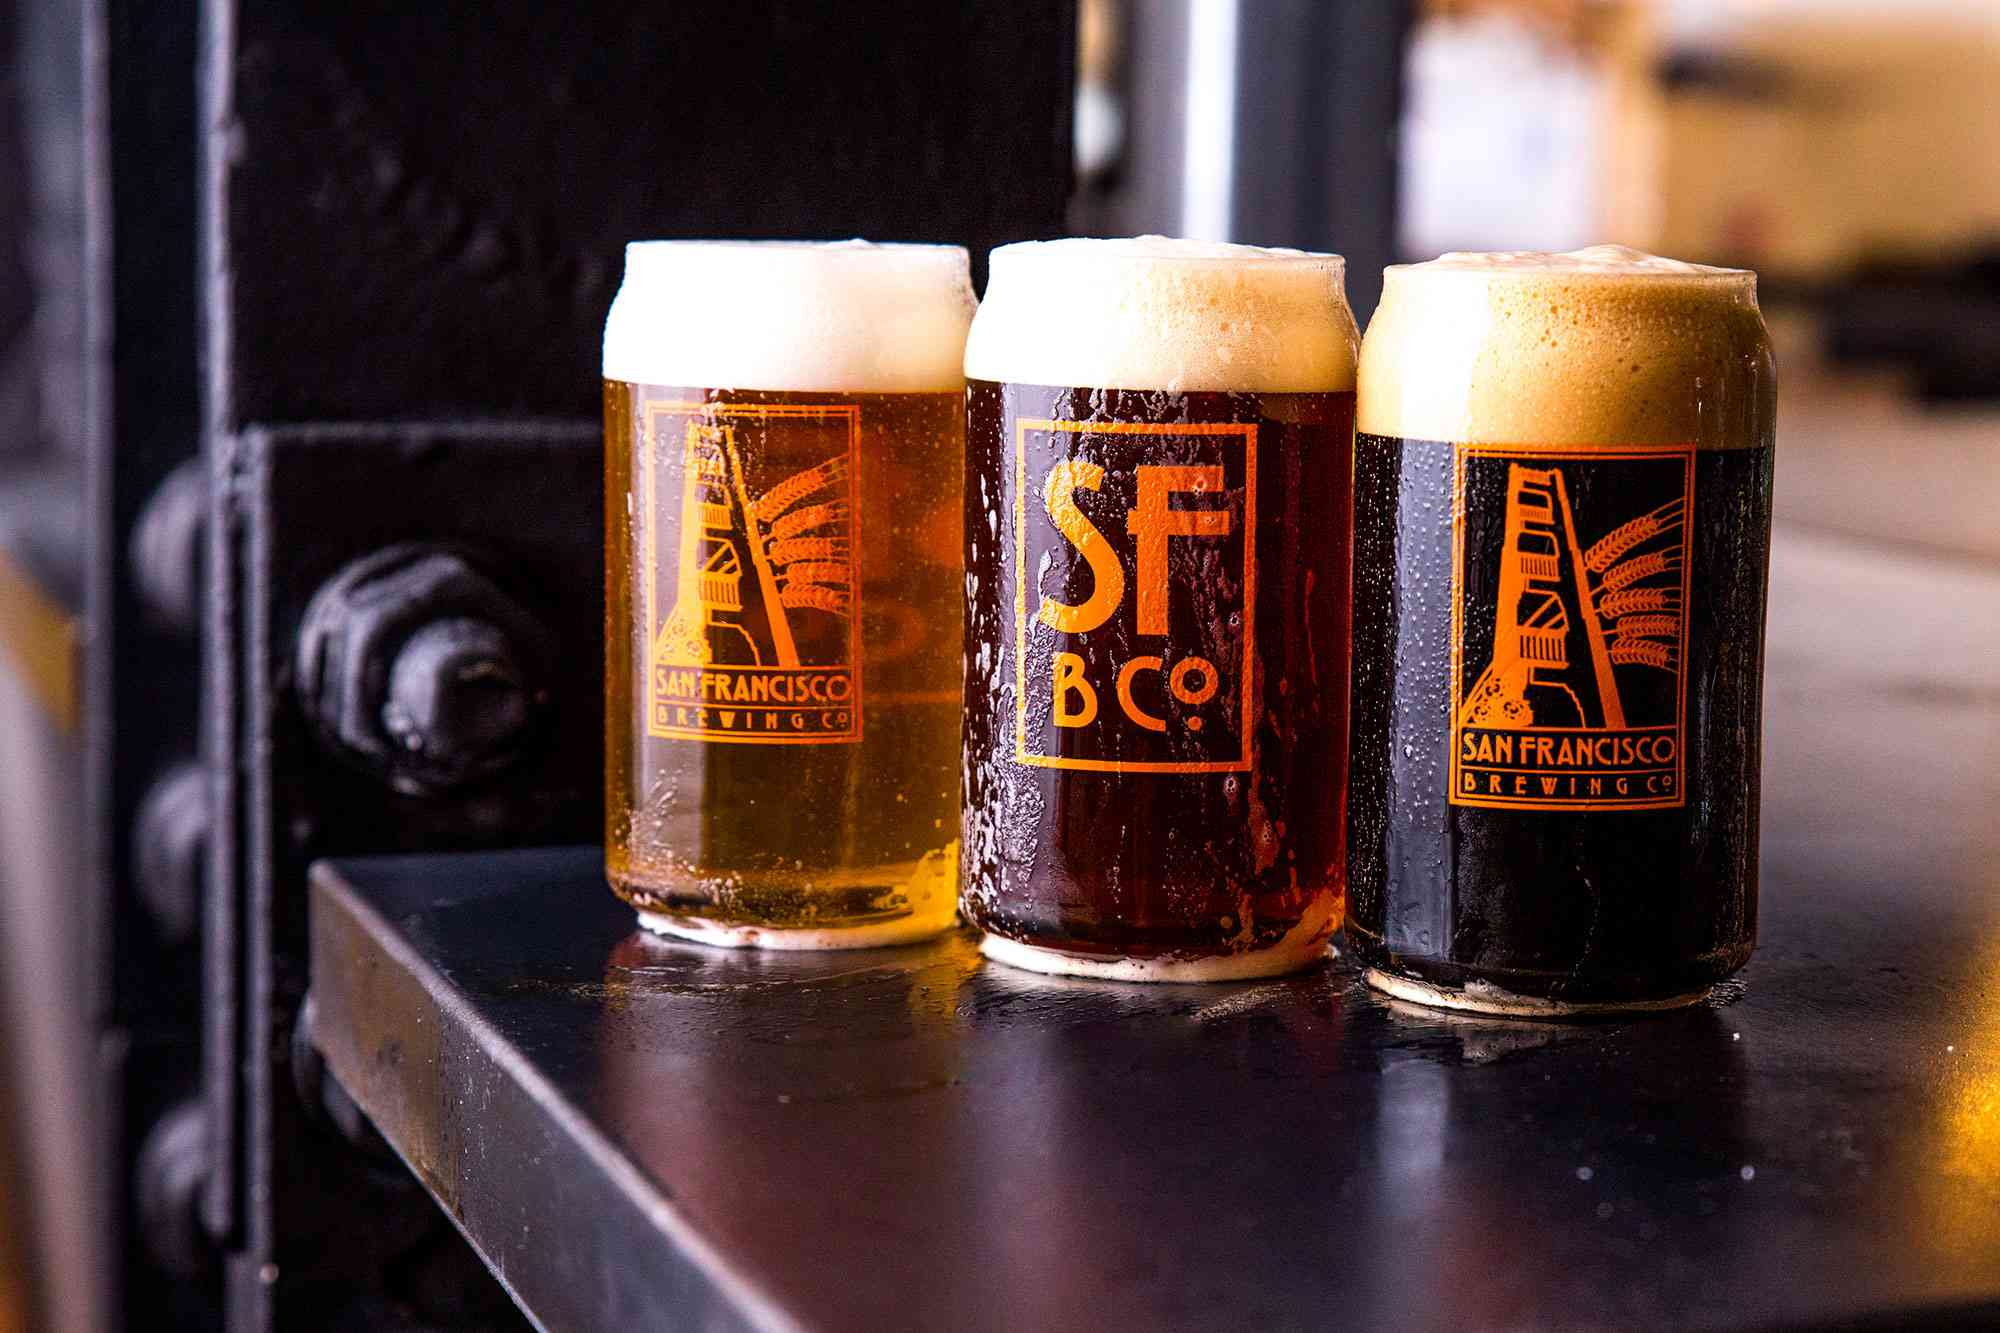 beers at San Francisco Brewing Co. & Restaurant